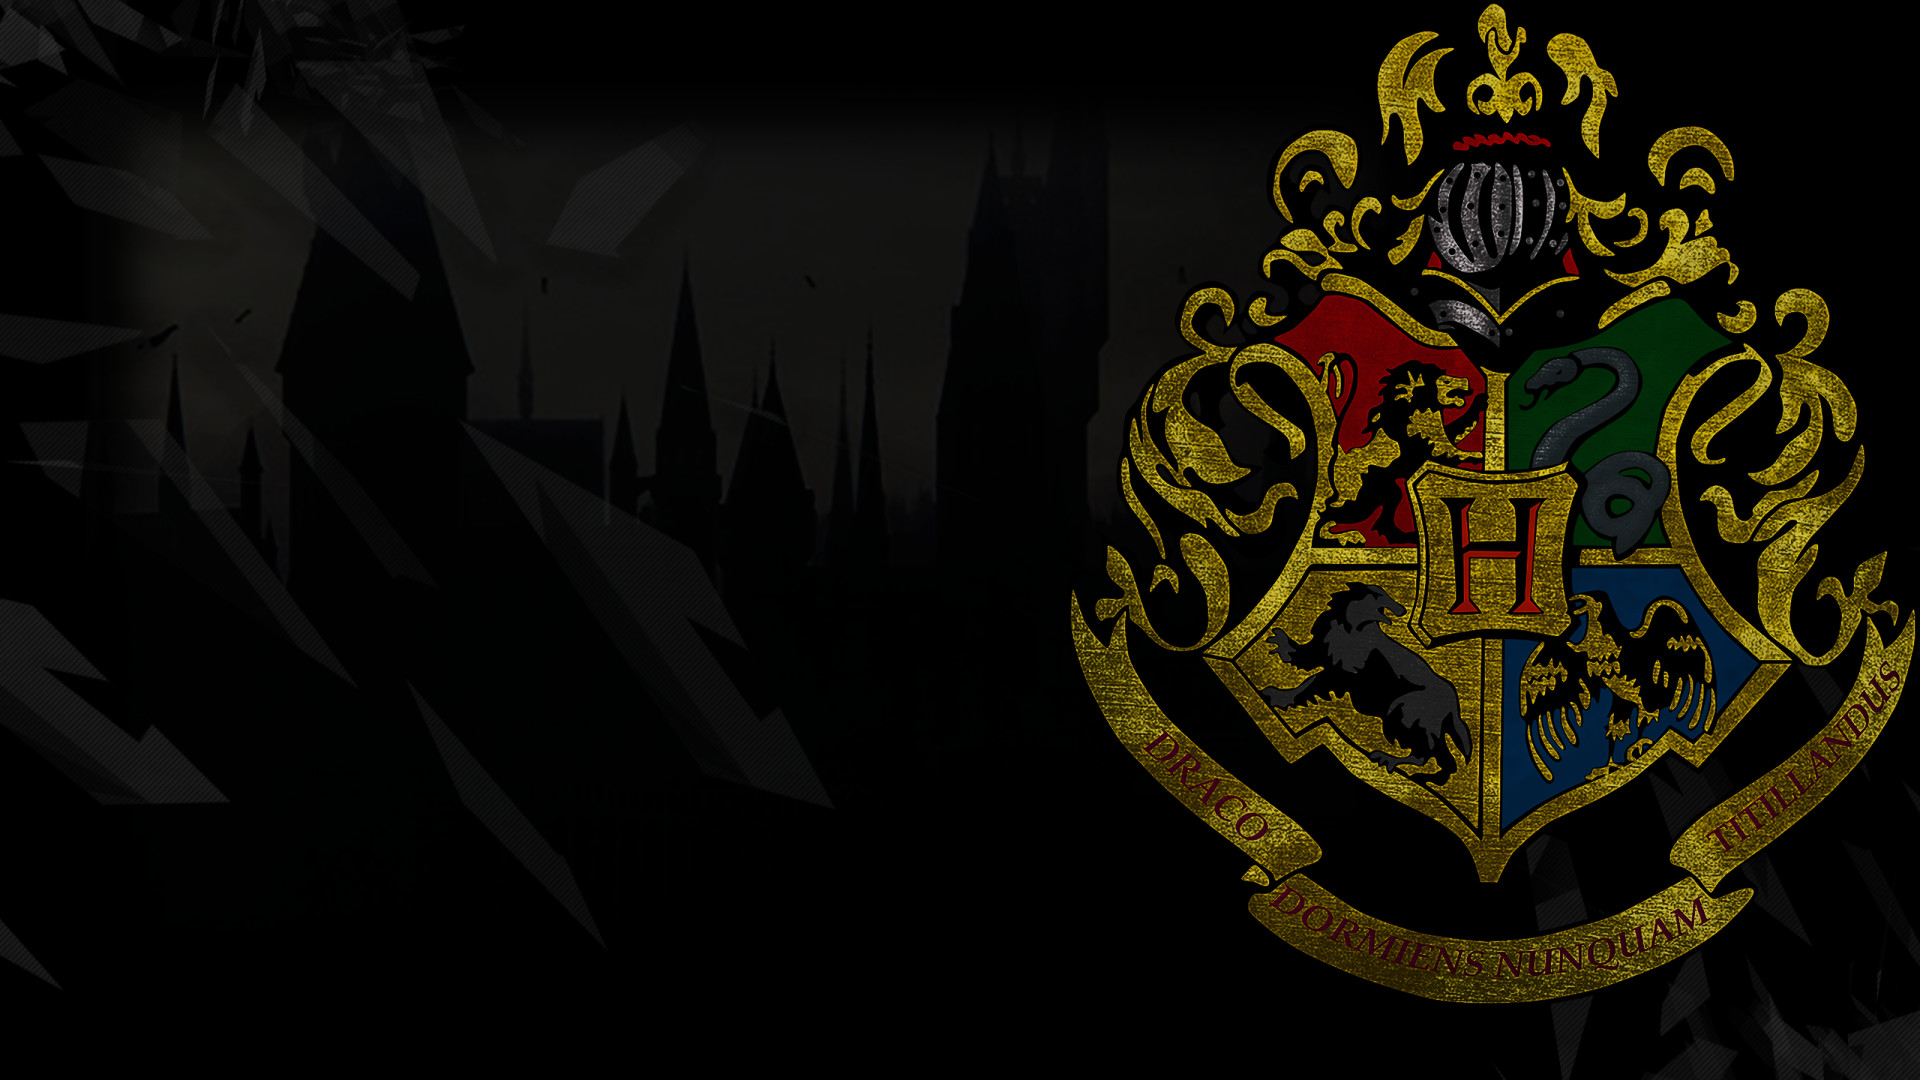 How To Get Live Wallpapers On Iphone 5 Harry Potter Slytherin Wallpaper 62 Images